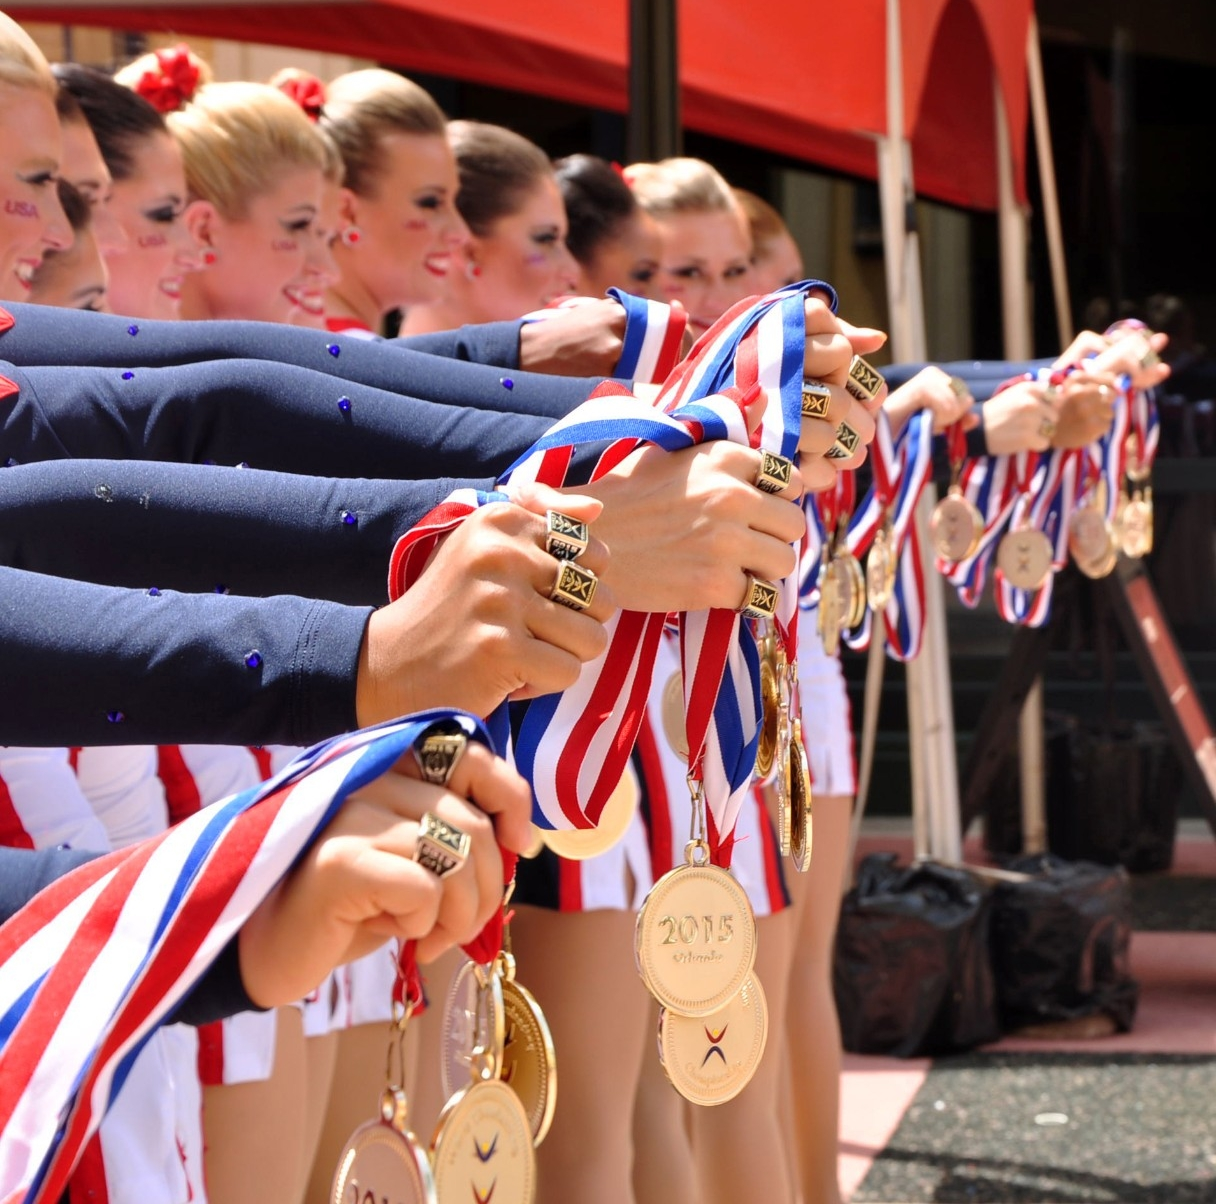 A long line of women holding gold medals out in front of themselves. The UC Dance Team represented the U.S. in an international competition and won.